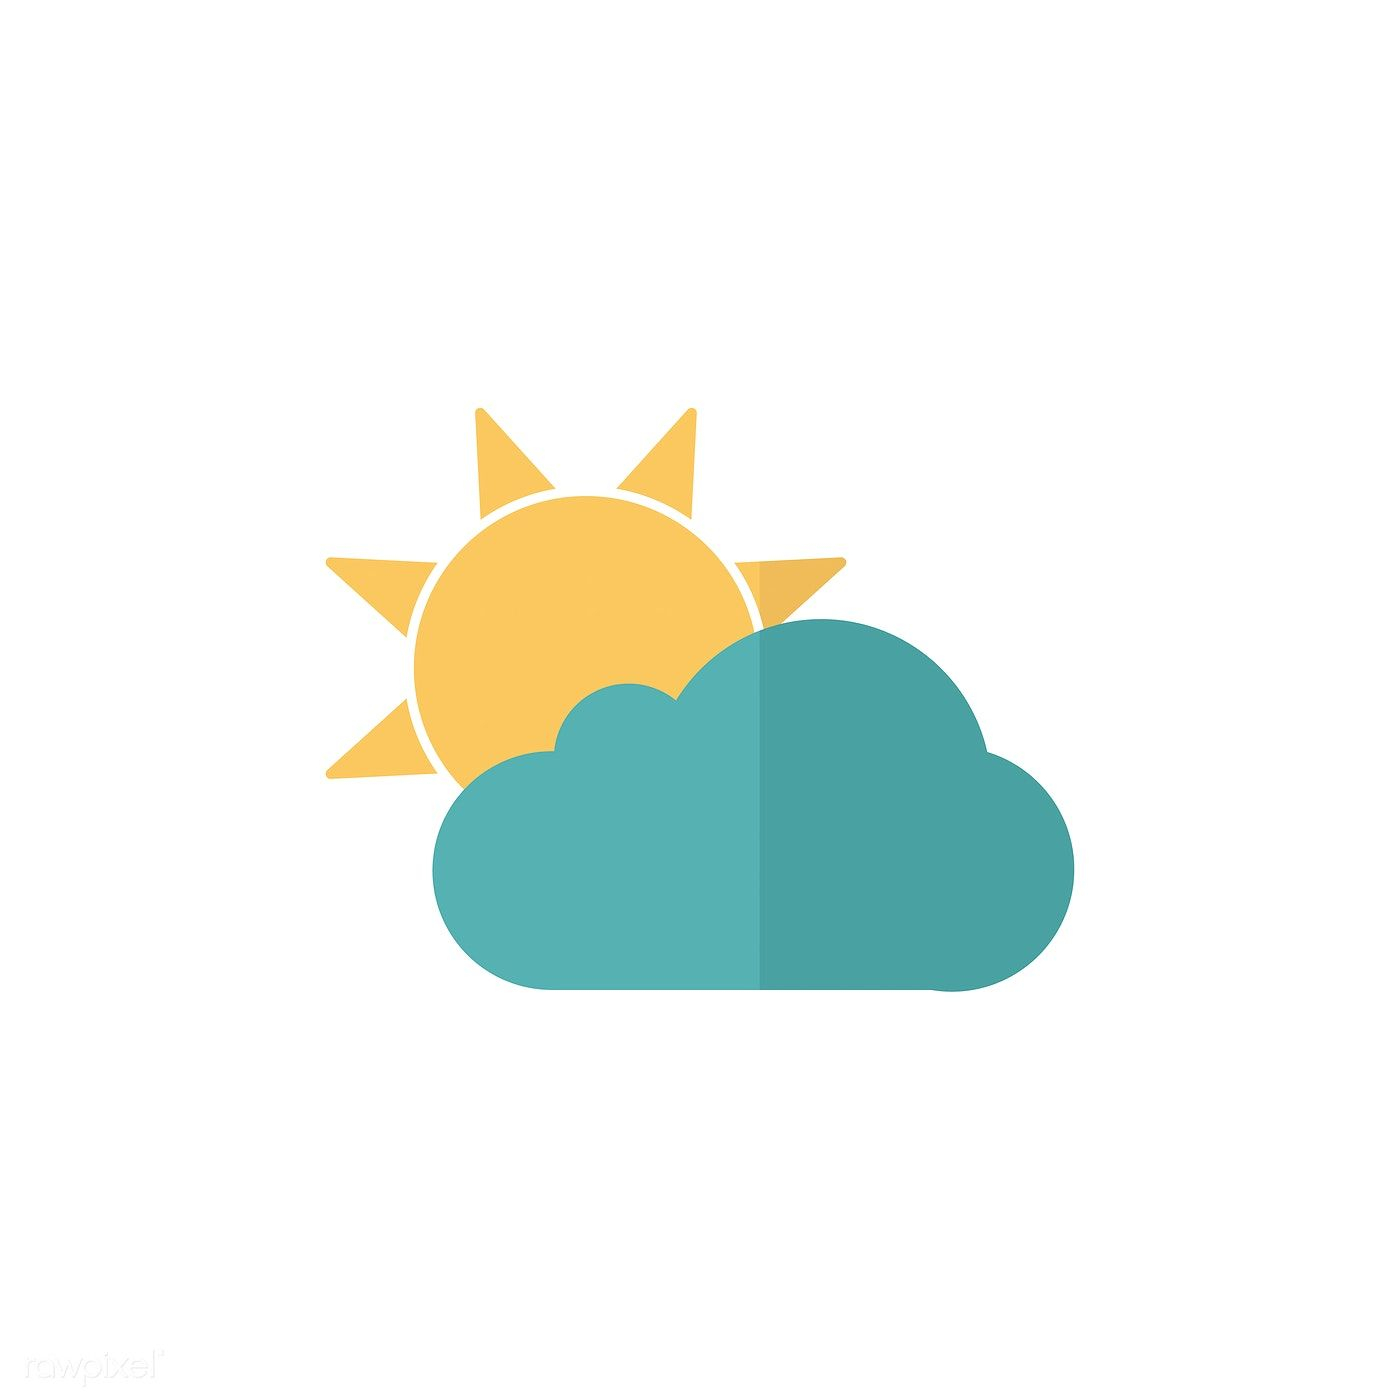 Illustration Of Weather Forecast Icon Free Image By Rawpixel Com In 2020 Illustration Free Illustrations Cute App